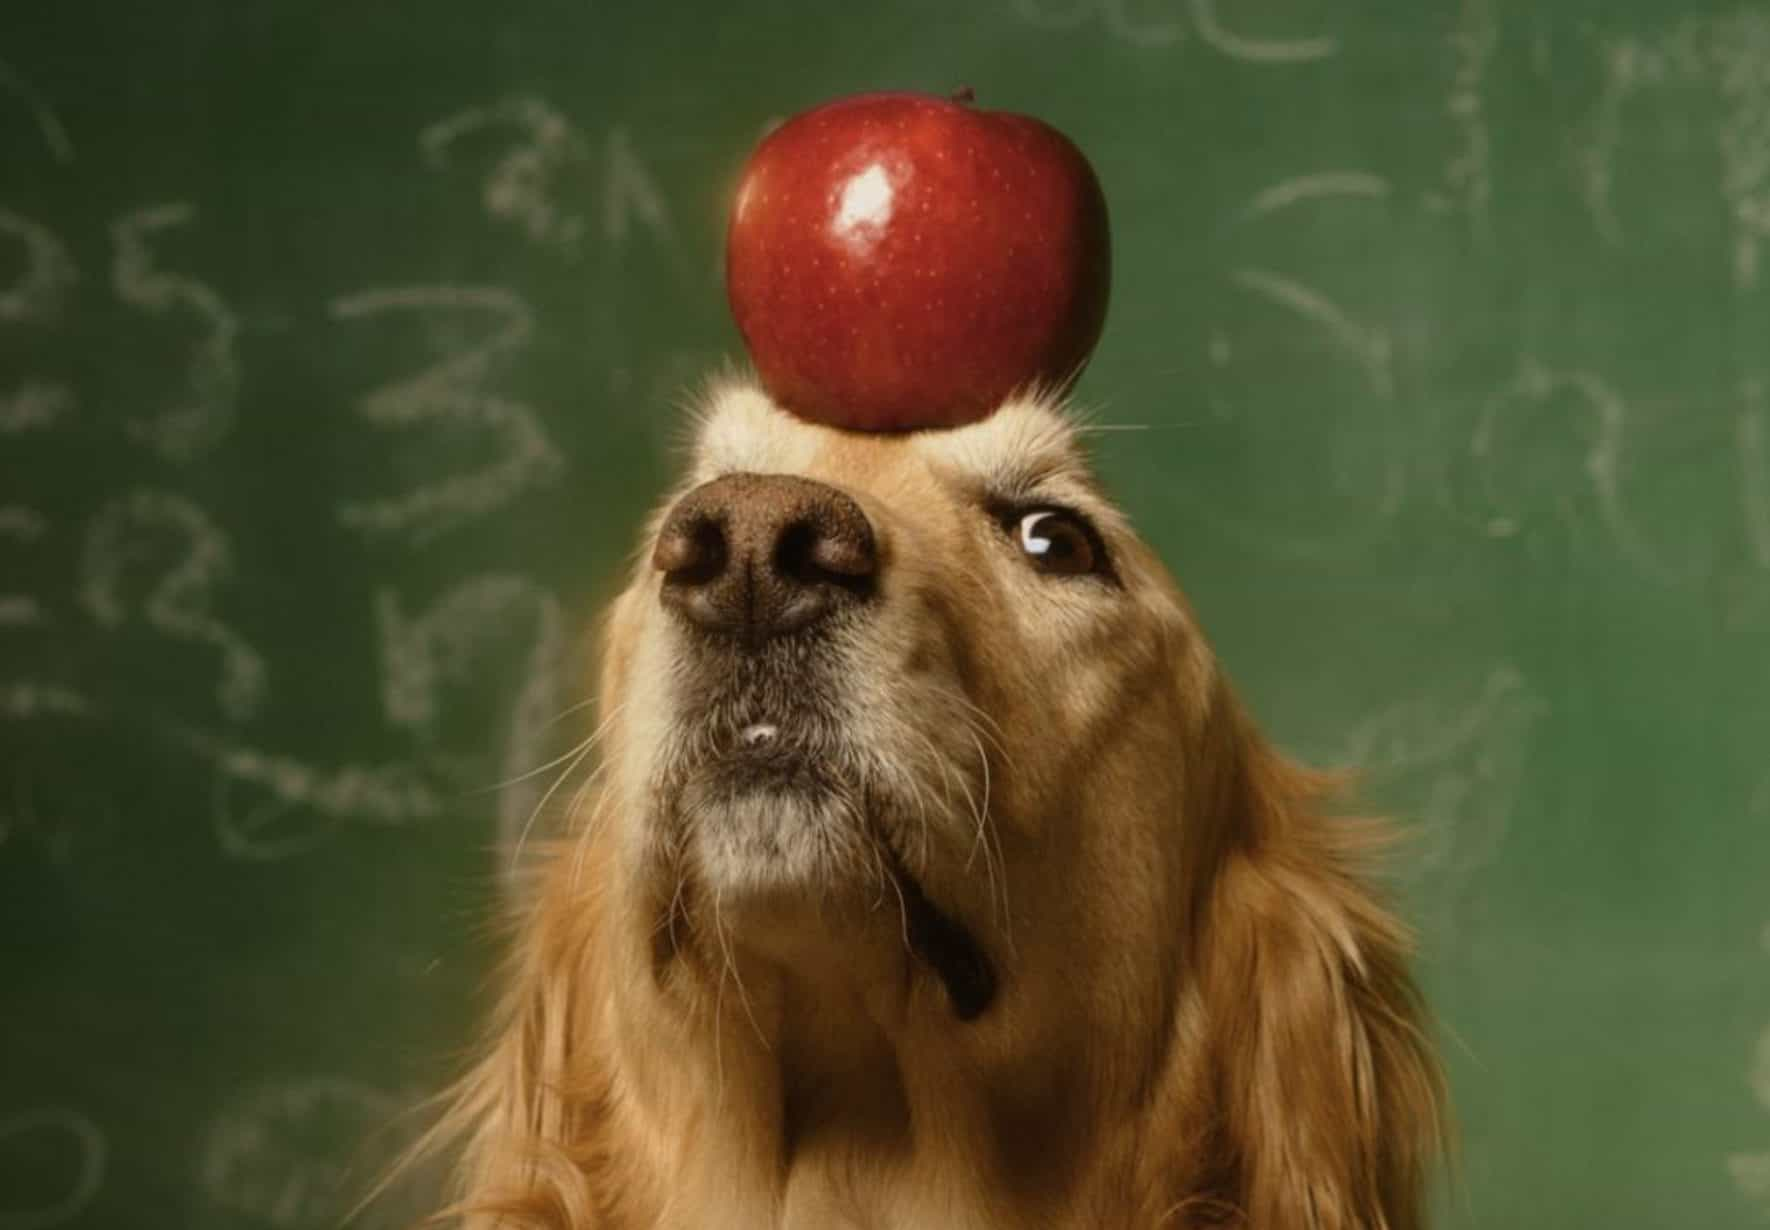 There are side effects that may occur with dogs and apples.